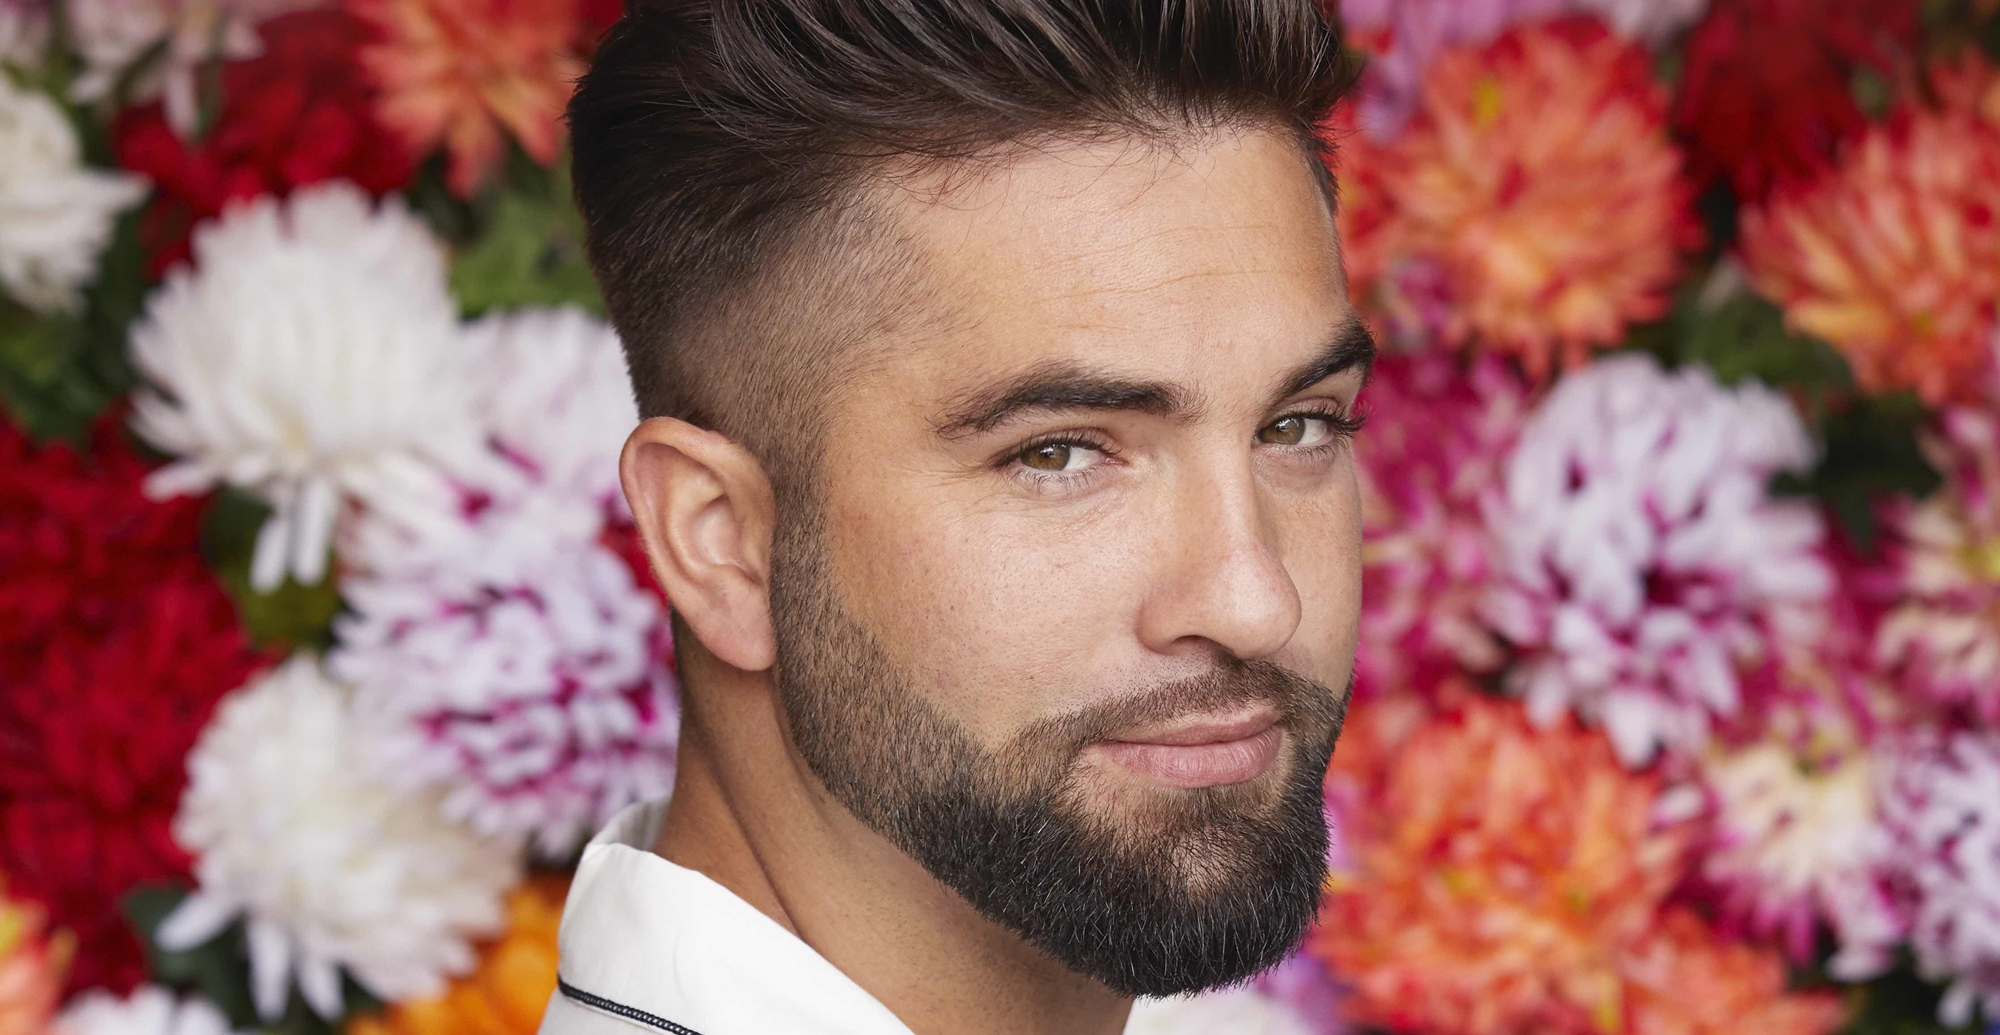 kendji girac nouveau single habibi